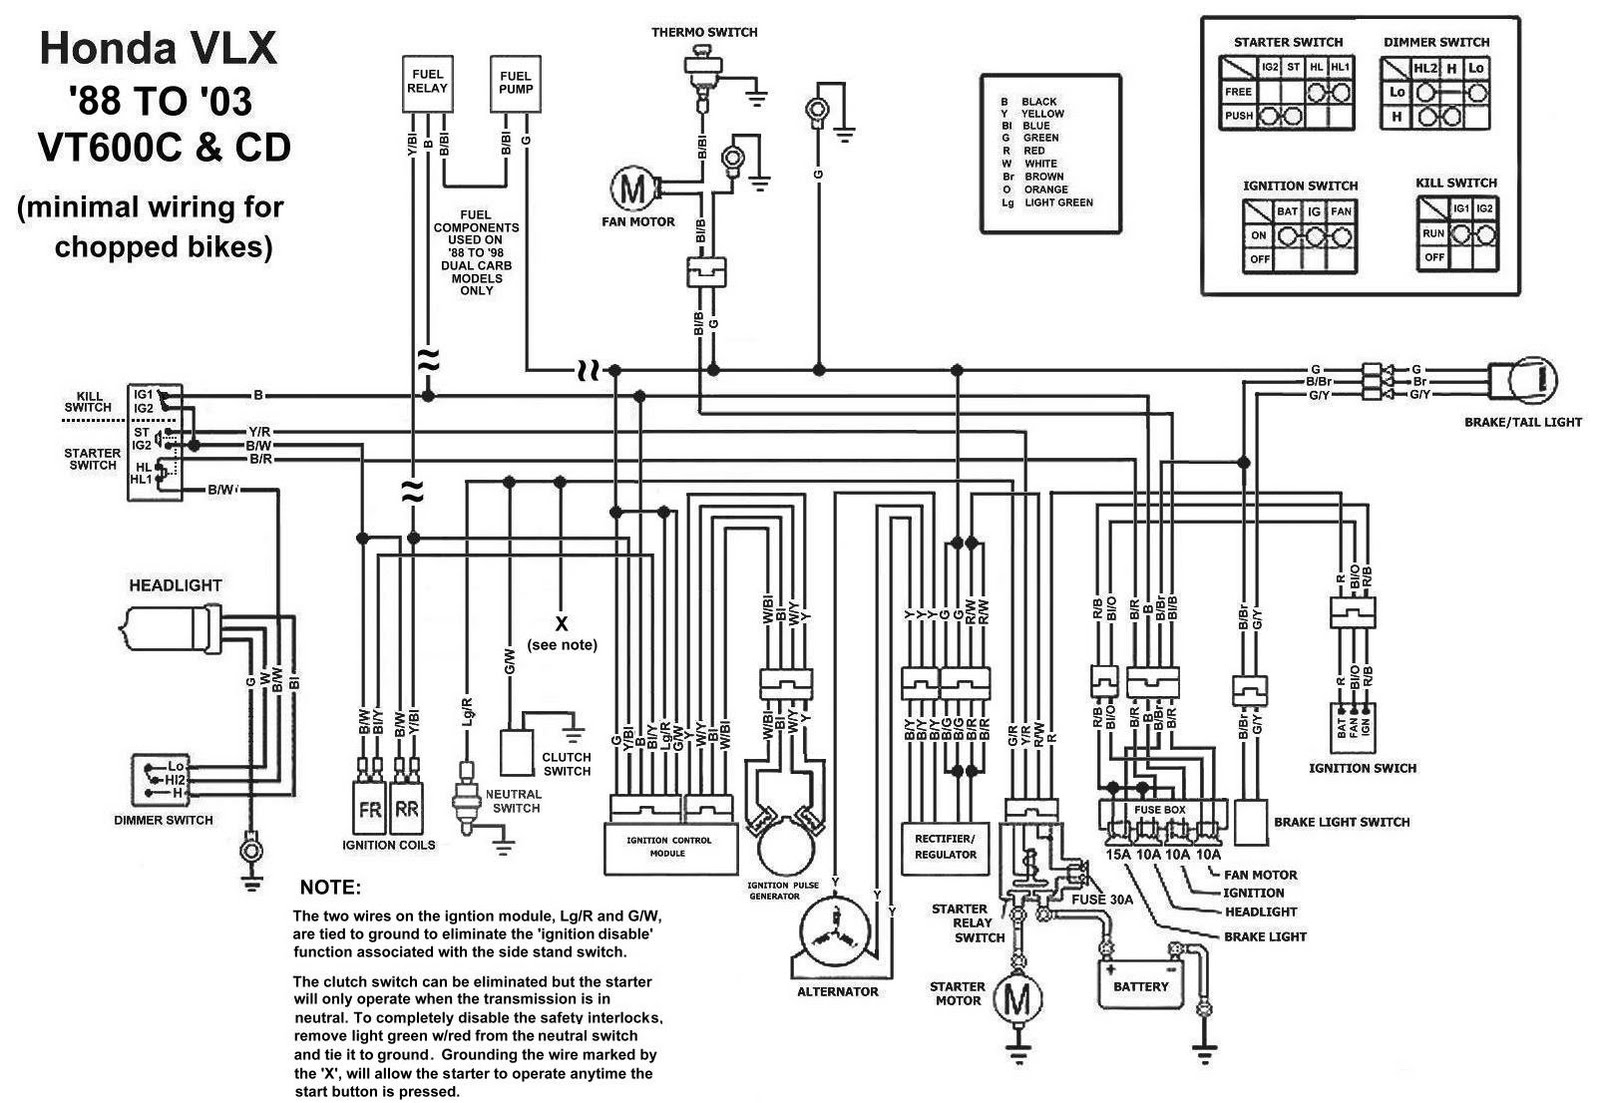 Awesome Mga 1500 Wiring Diagram Ideas - Everything You Need to ...